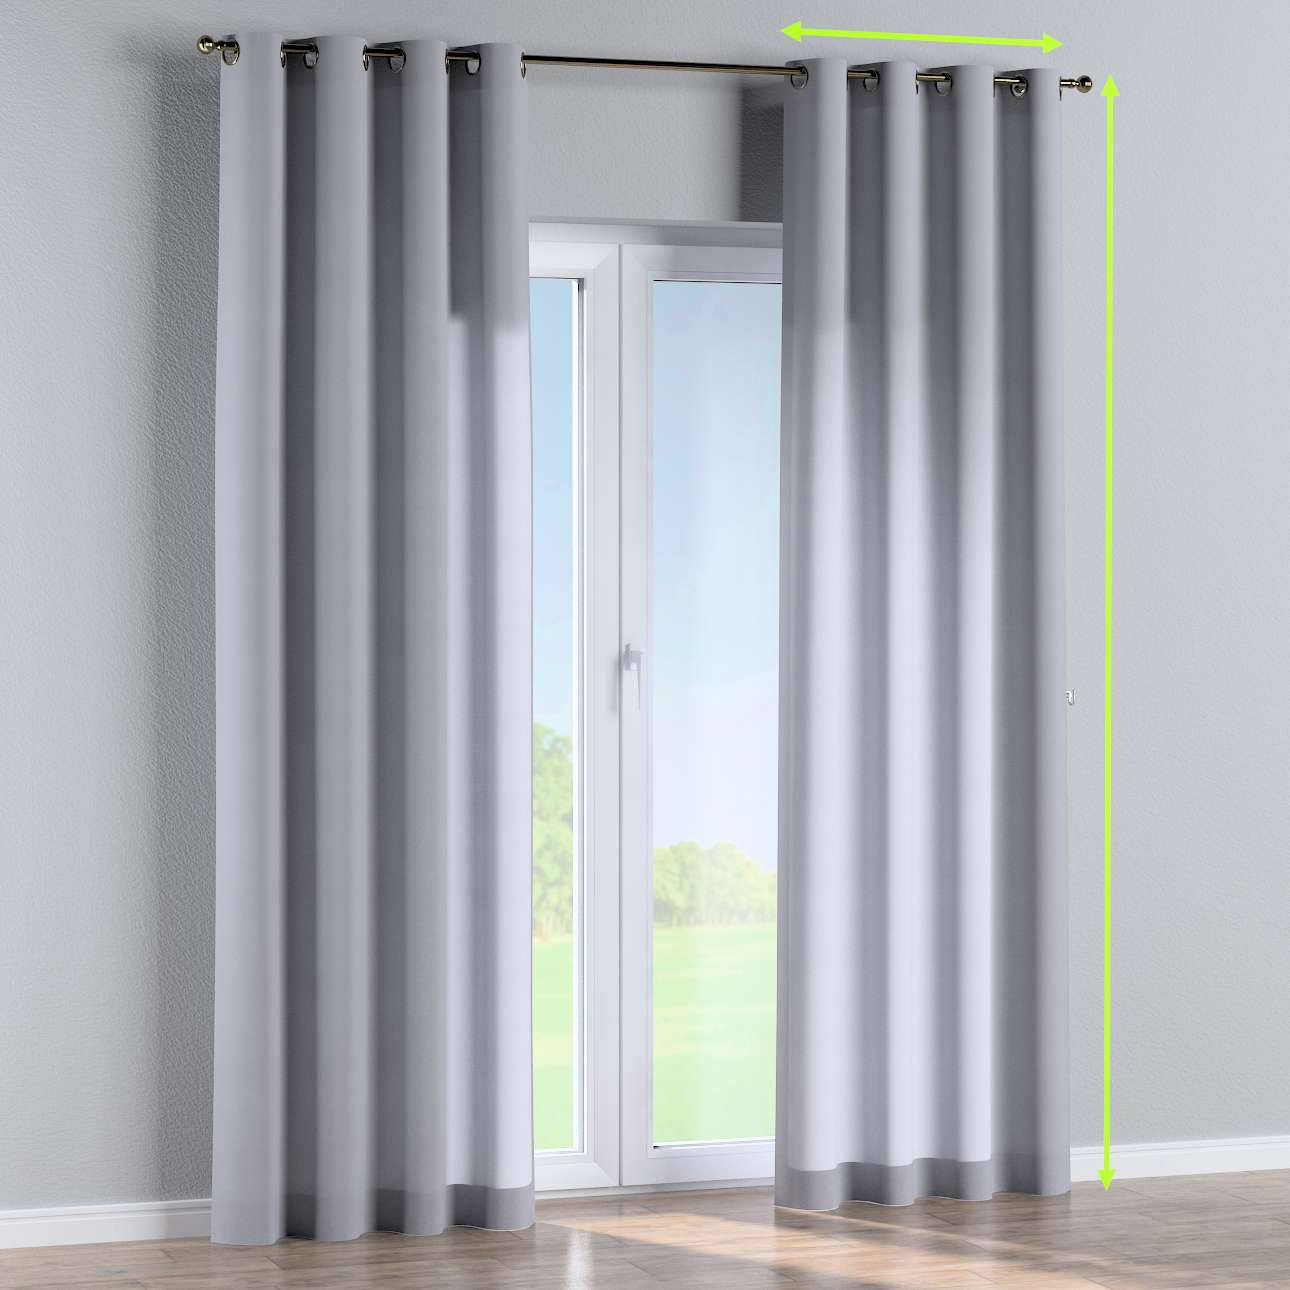 Eyelet curtains in collection Jupiter, fabric: 127-92